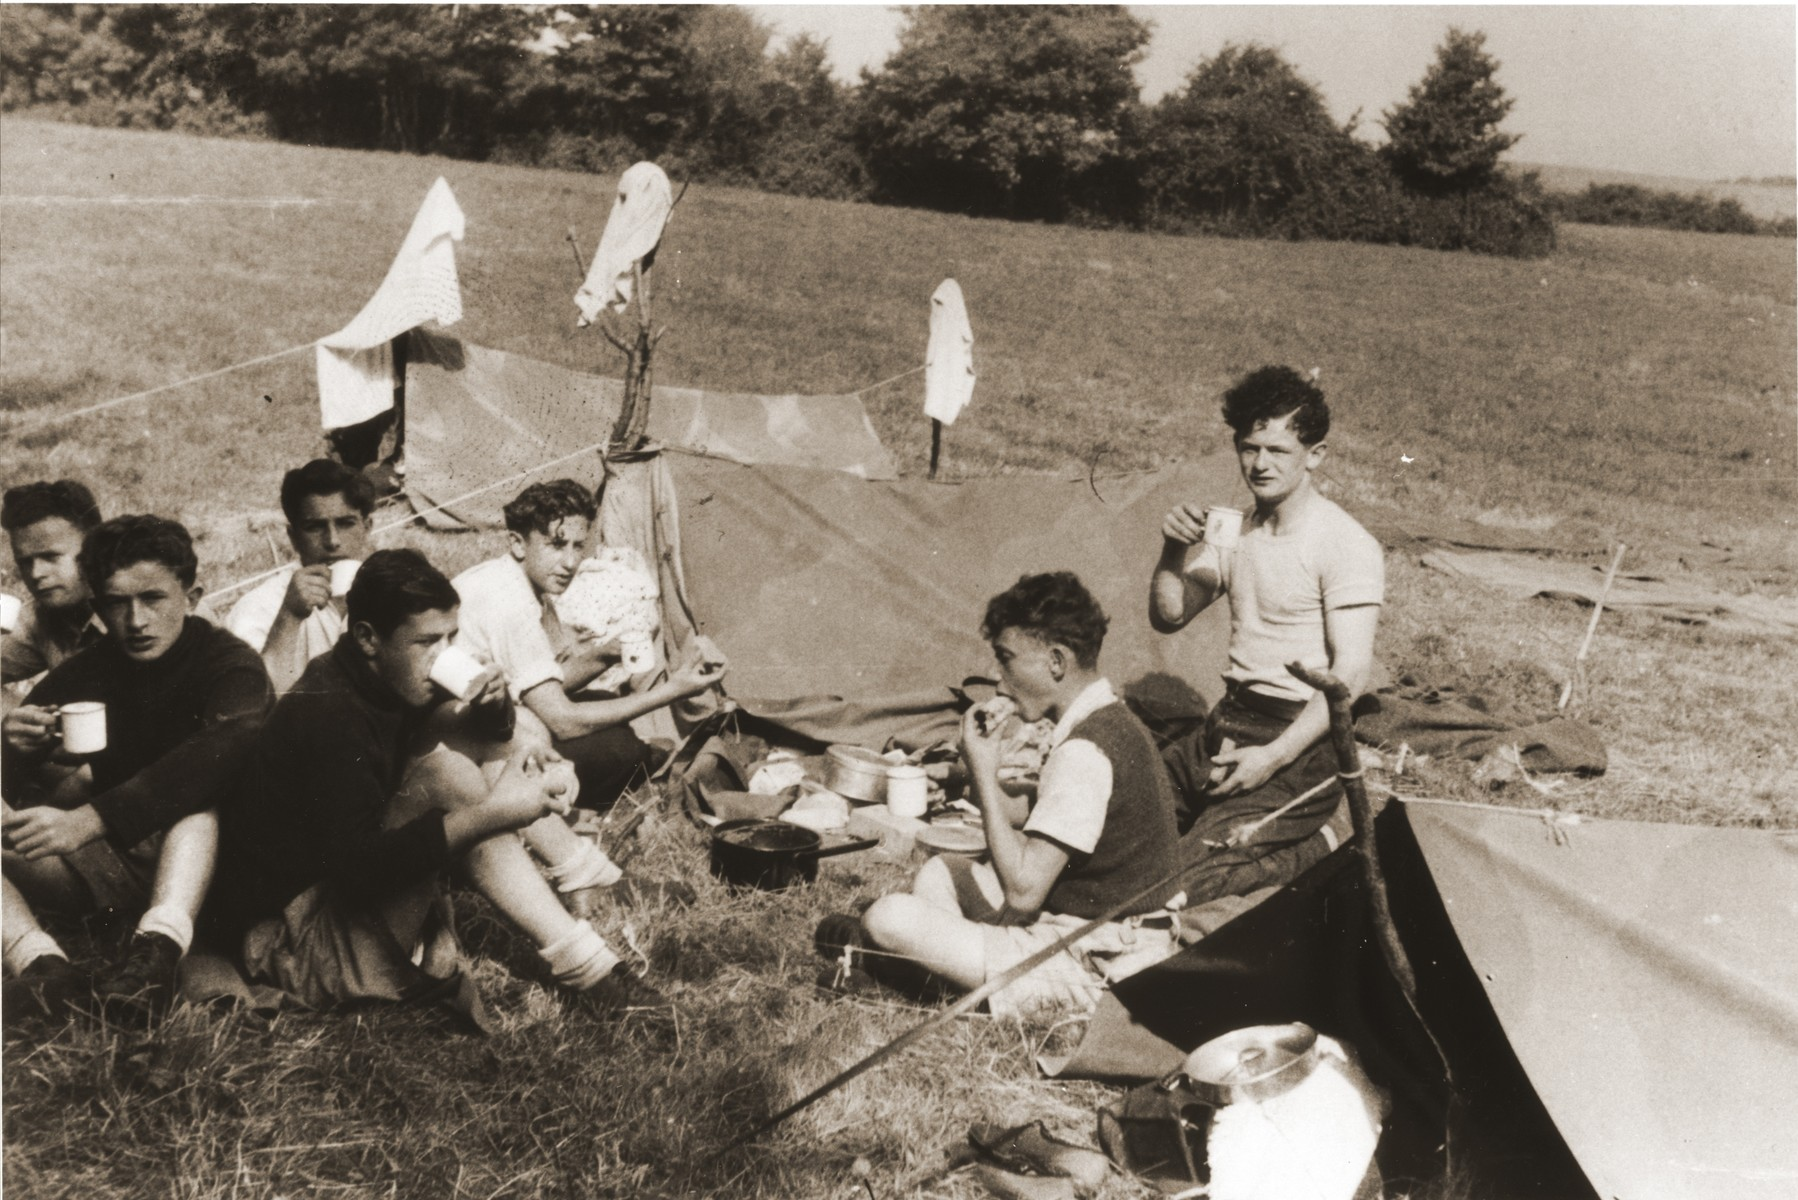 Members of the orphans transport to England go camping on the Isle of Wight.  Among those pictured are Paul Gast (center), Szlomo Kuszerman (second from the right) and Moniek Goldberg (right).